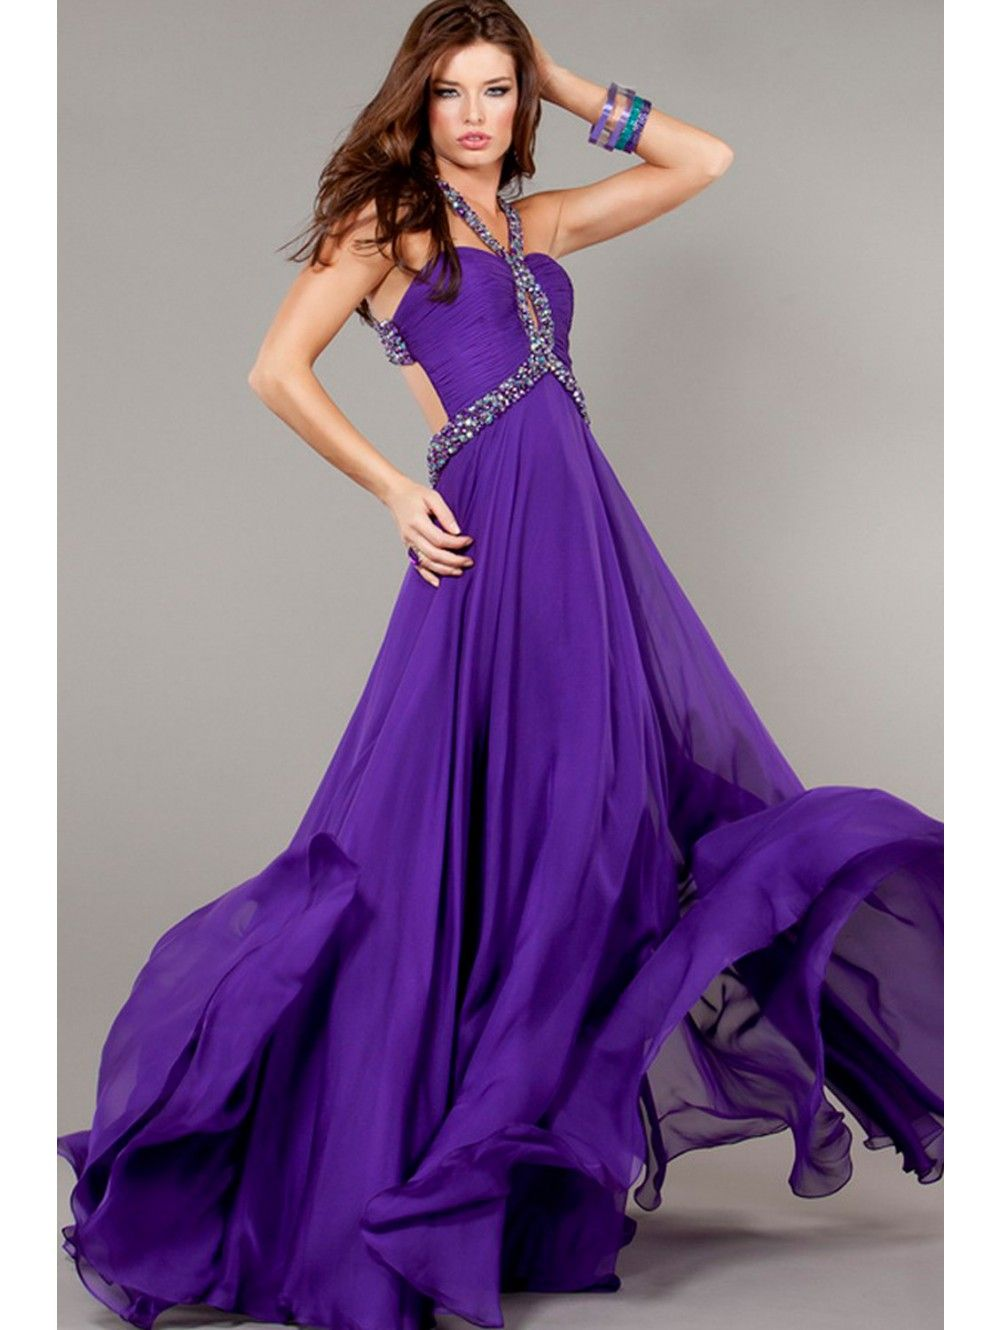 NEW) Purple Chiffon Halter Long Prom Dress/Bridesmaid Dress 2015 ...